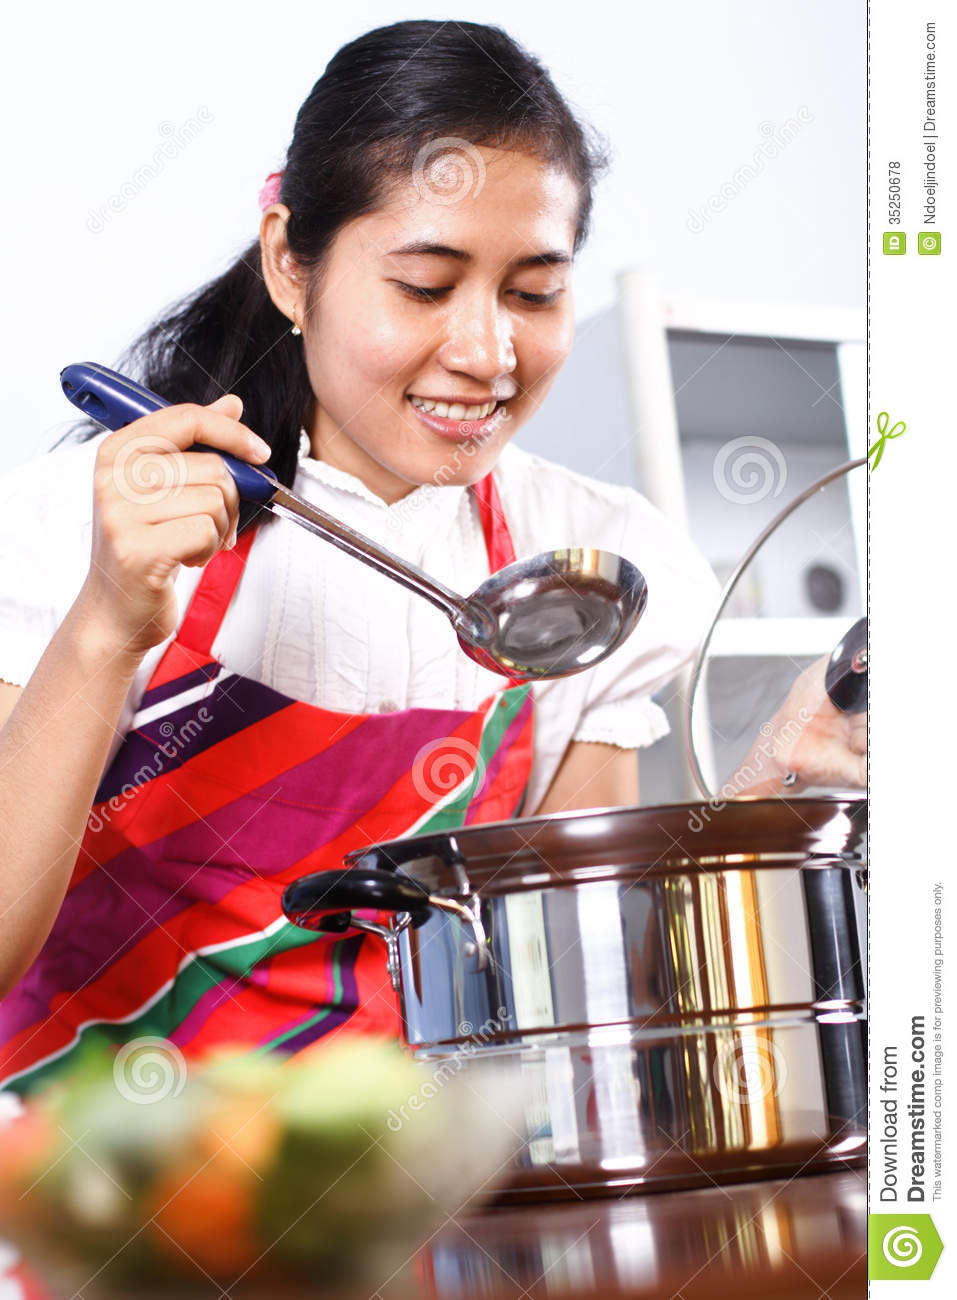 Asian Woman Cooking 89